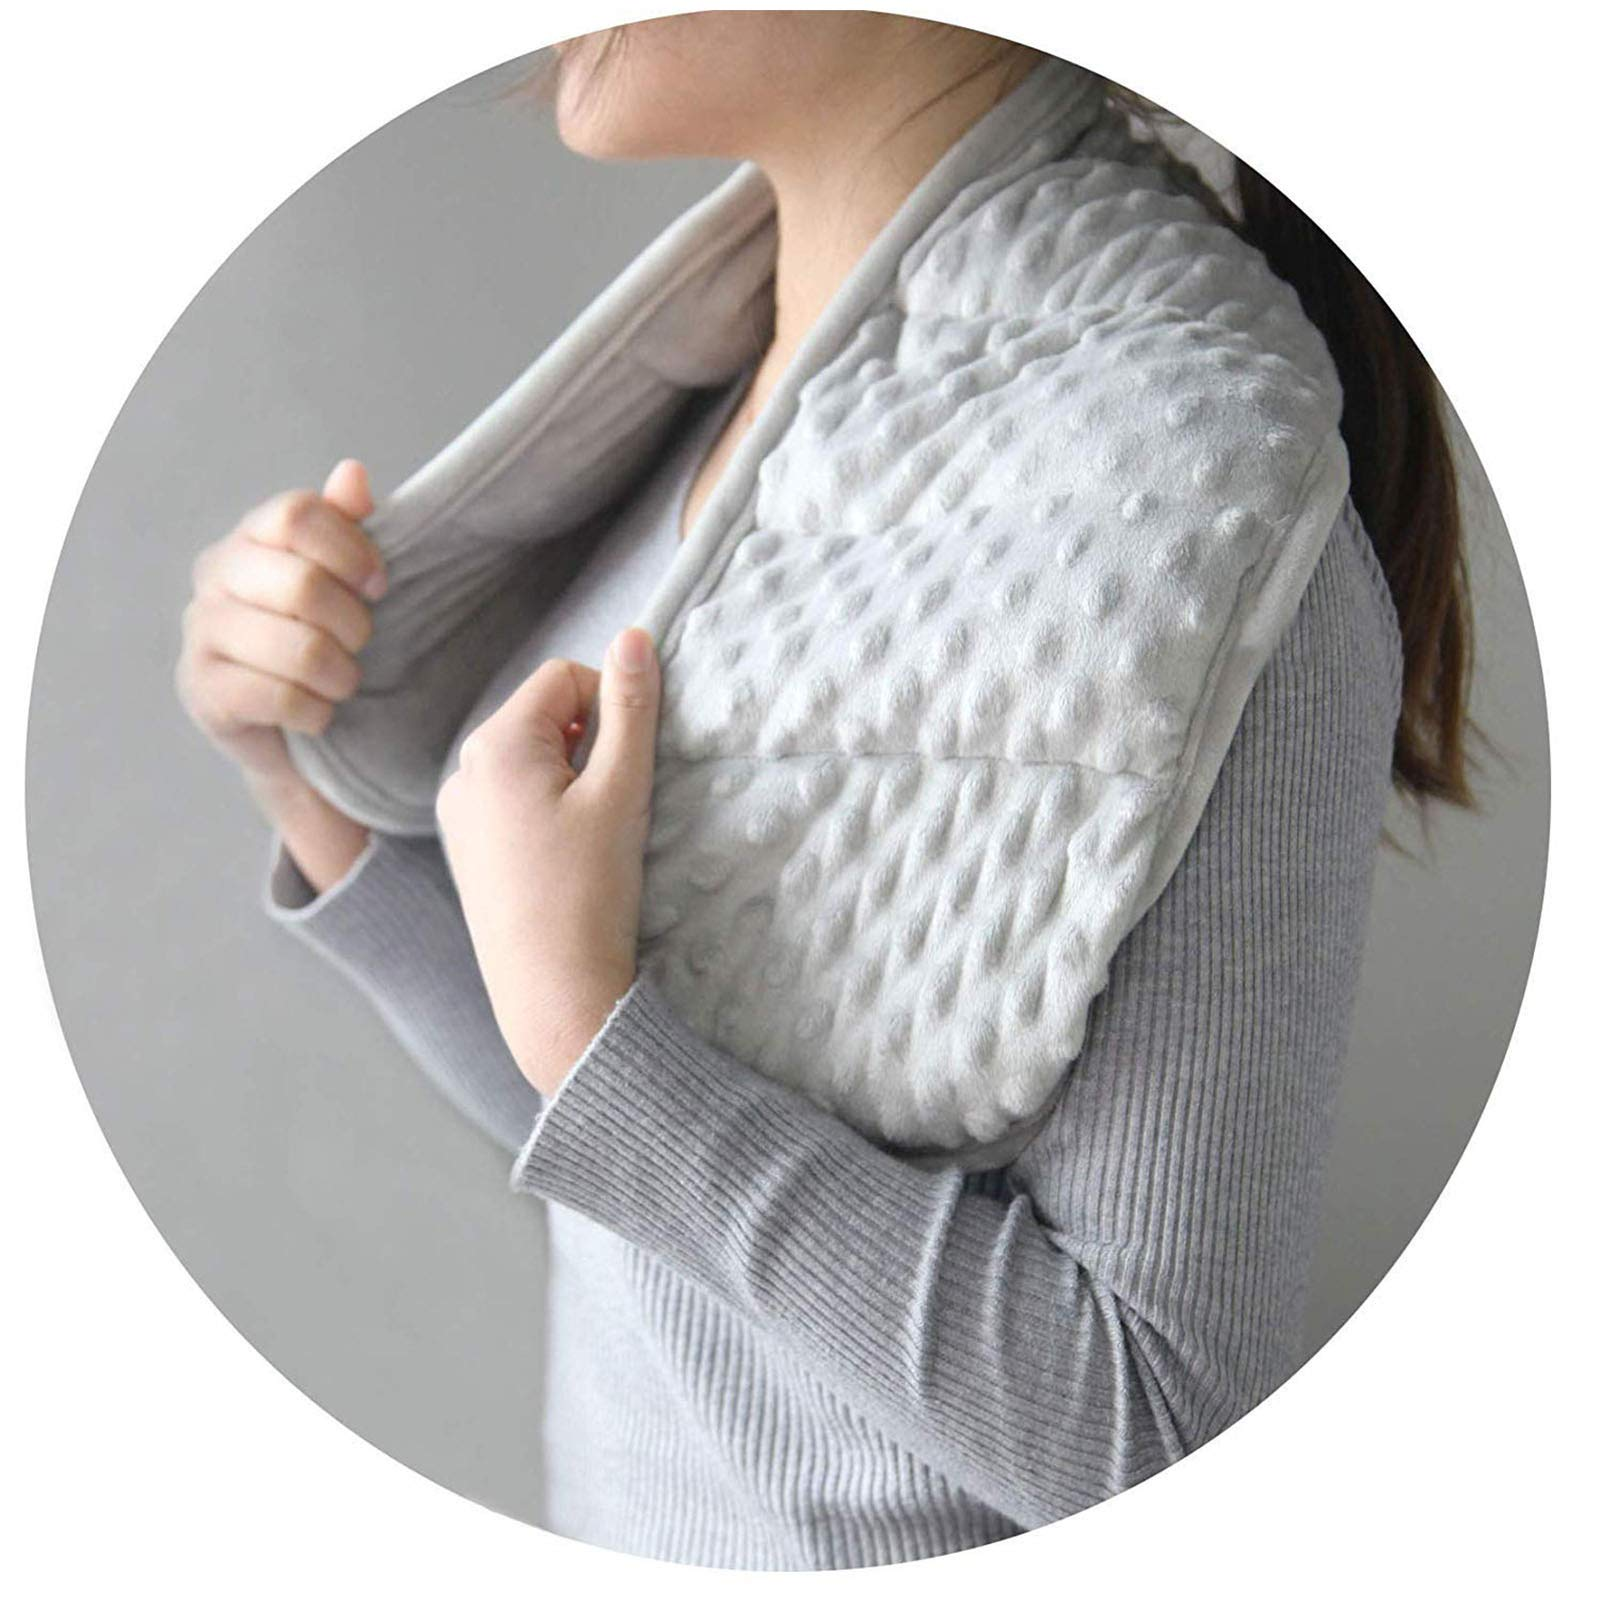 MAXTID Weighted Shoulder Wrap 4 Pound with Glass Beads